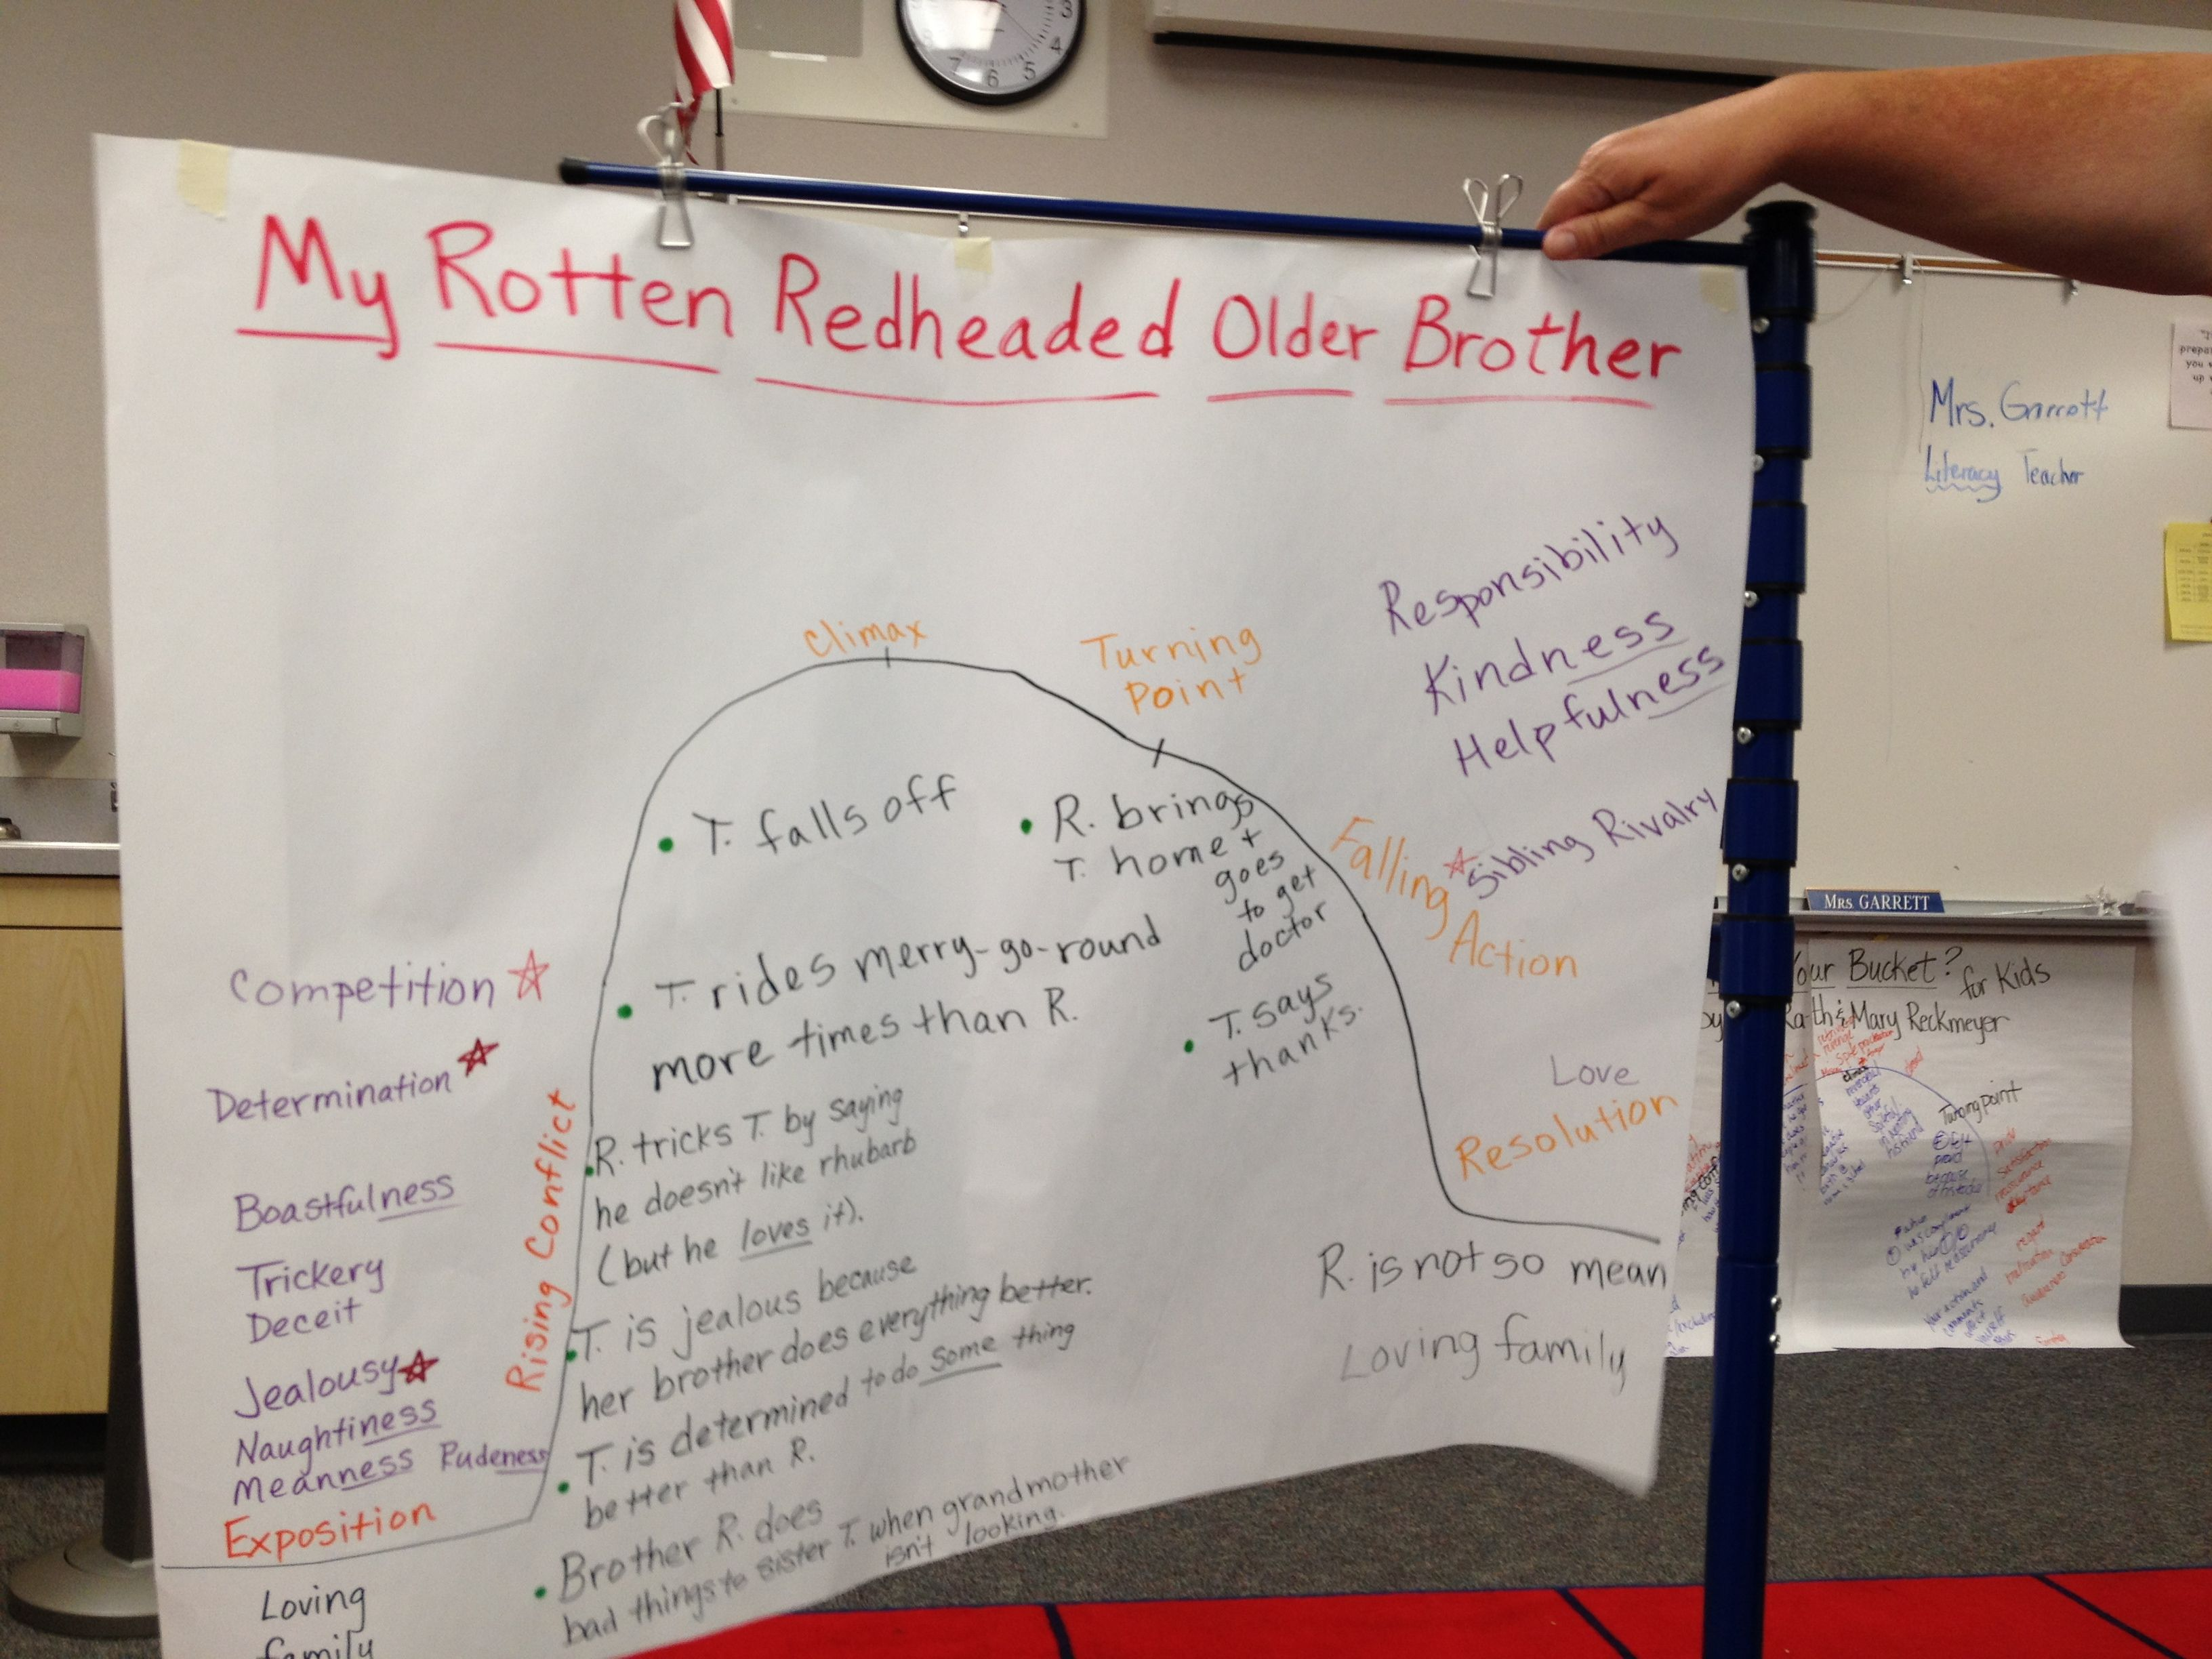 Story Arc For My Rotten Redheaded Older Brother By Patricia Co